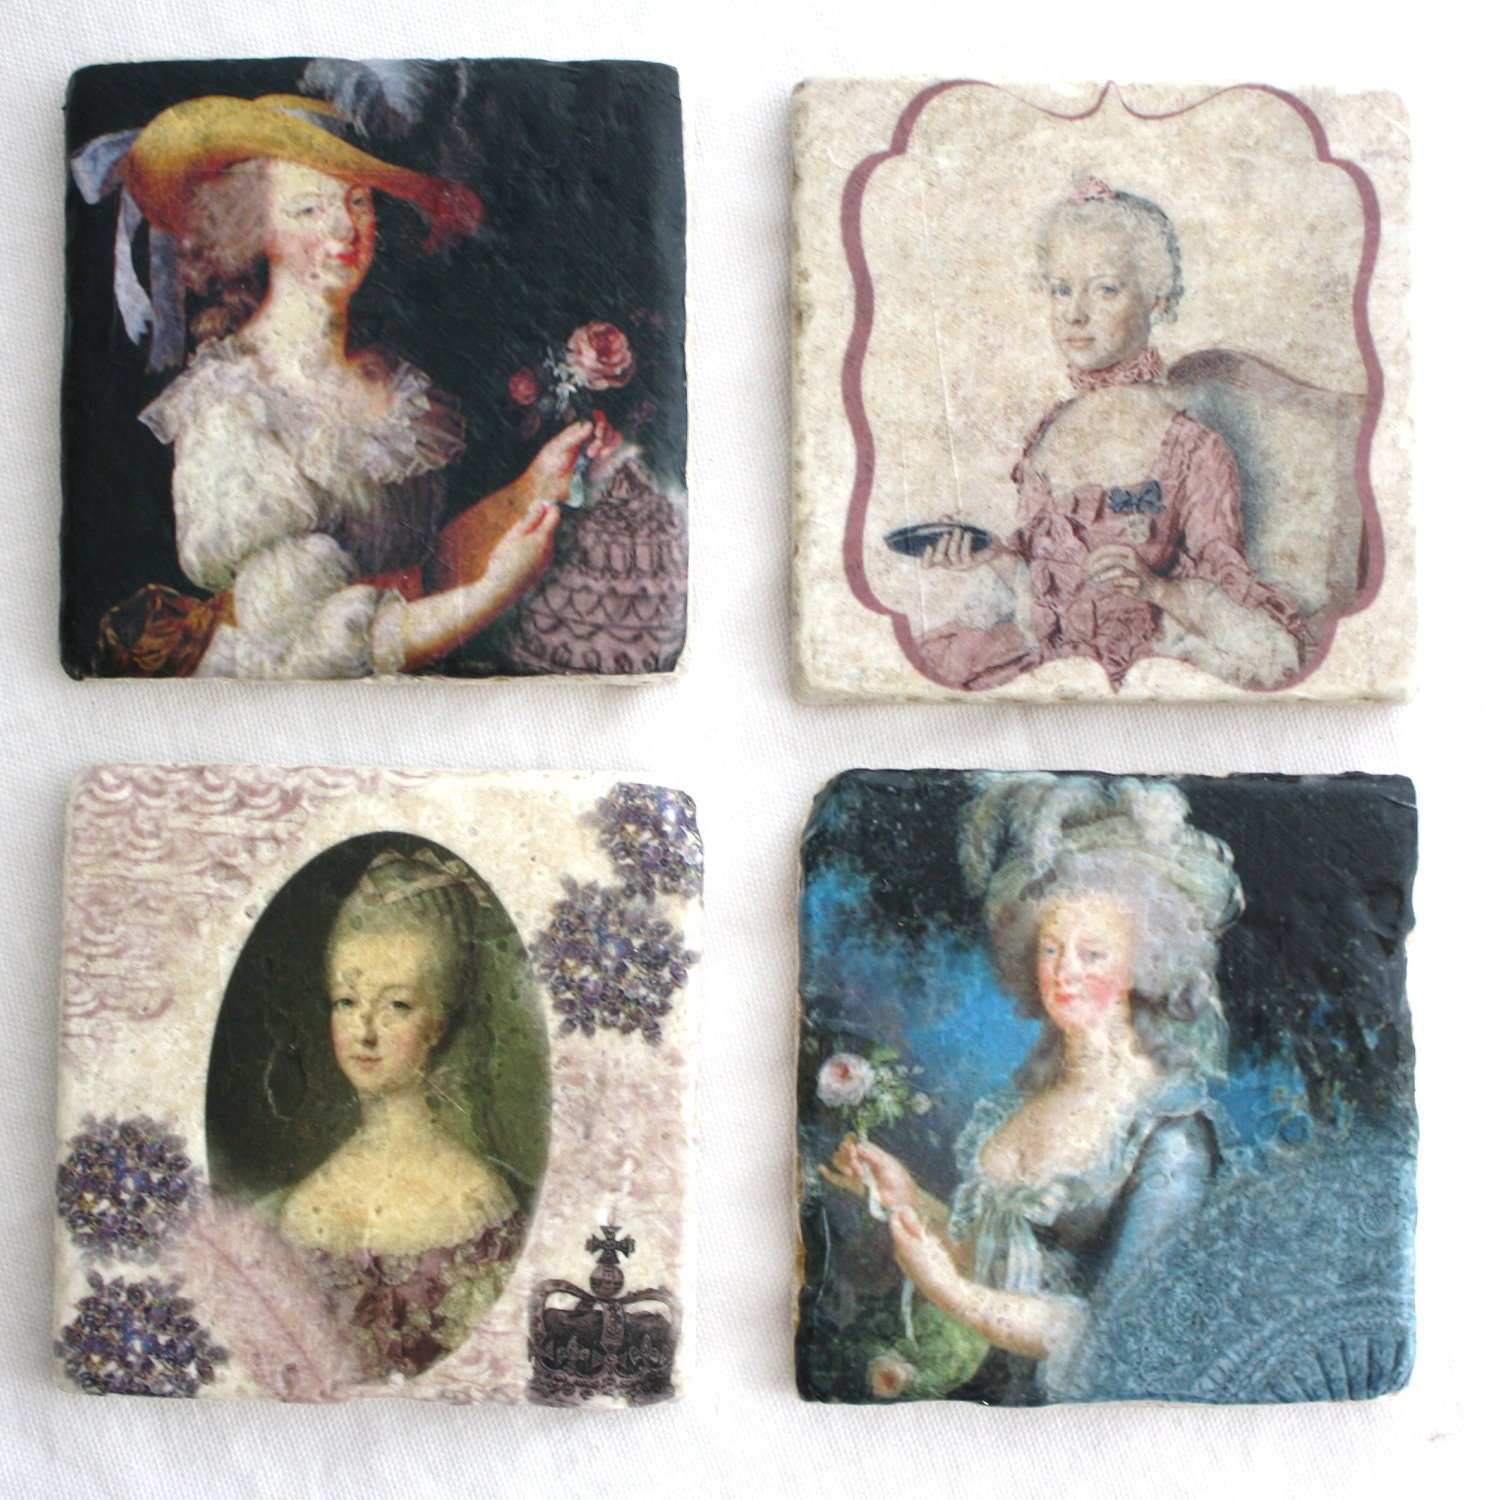 Tumbled Stone French Coasters- Marie Antoinette portraits, set of 4, water & heat safe- Free shipping insurance. French Country Decor.